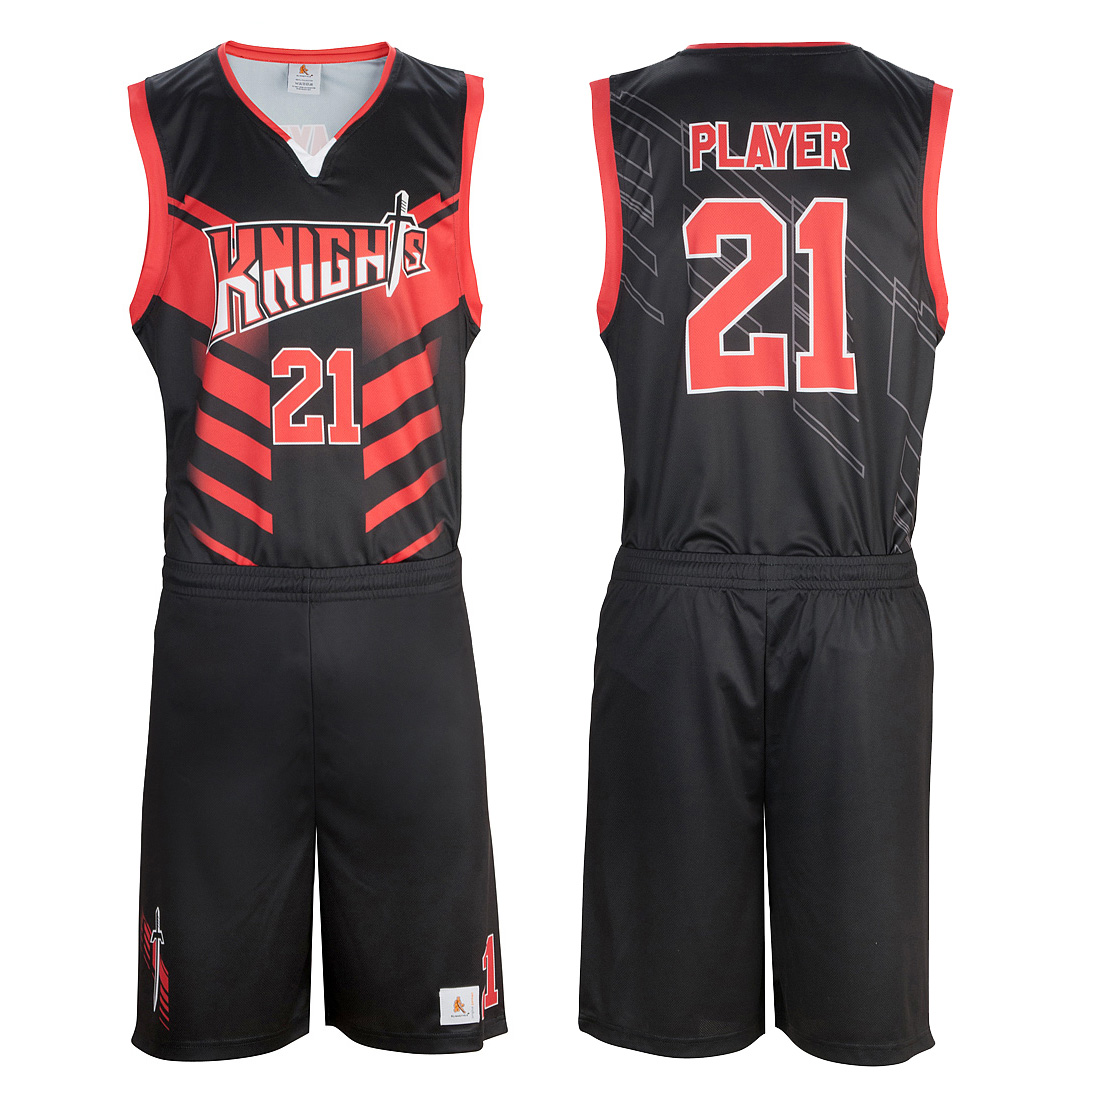 basketball uniforms and basketball jerseys from slamstyle